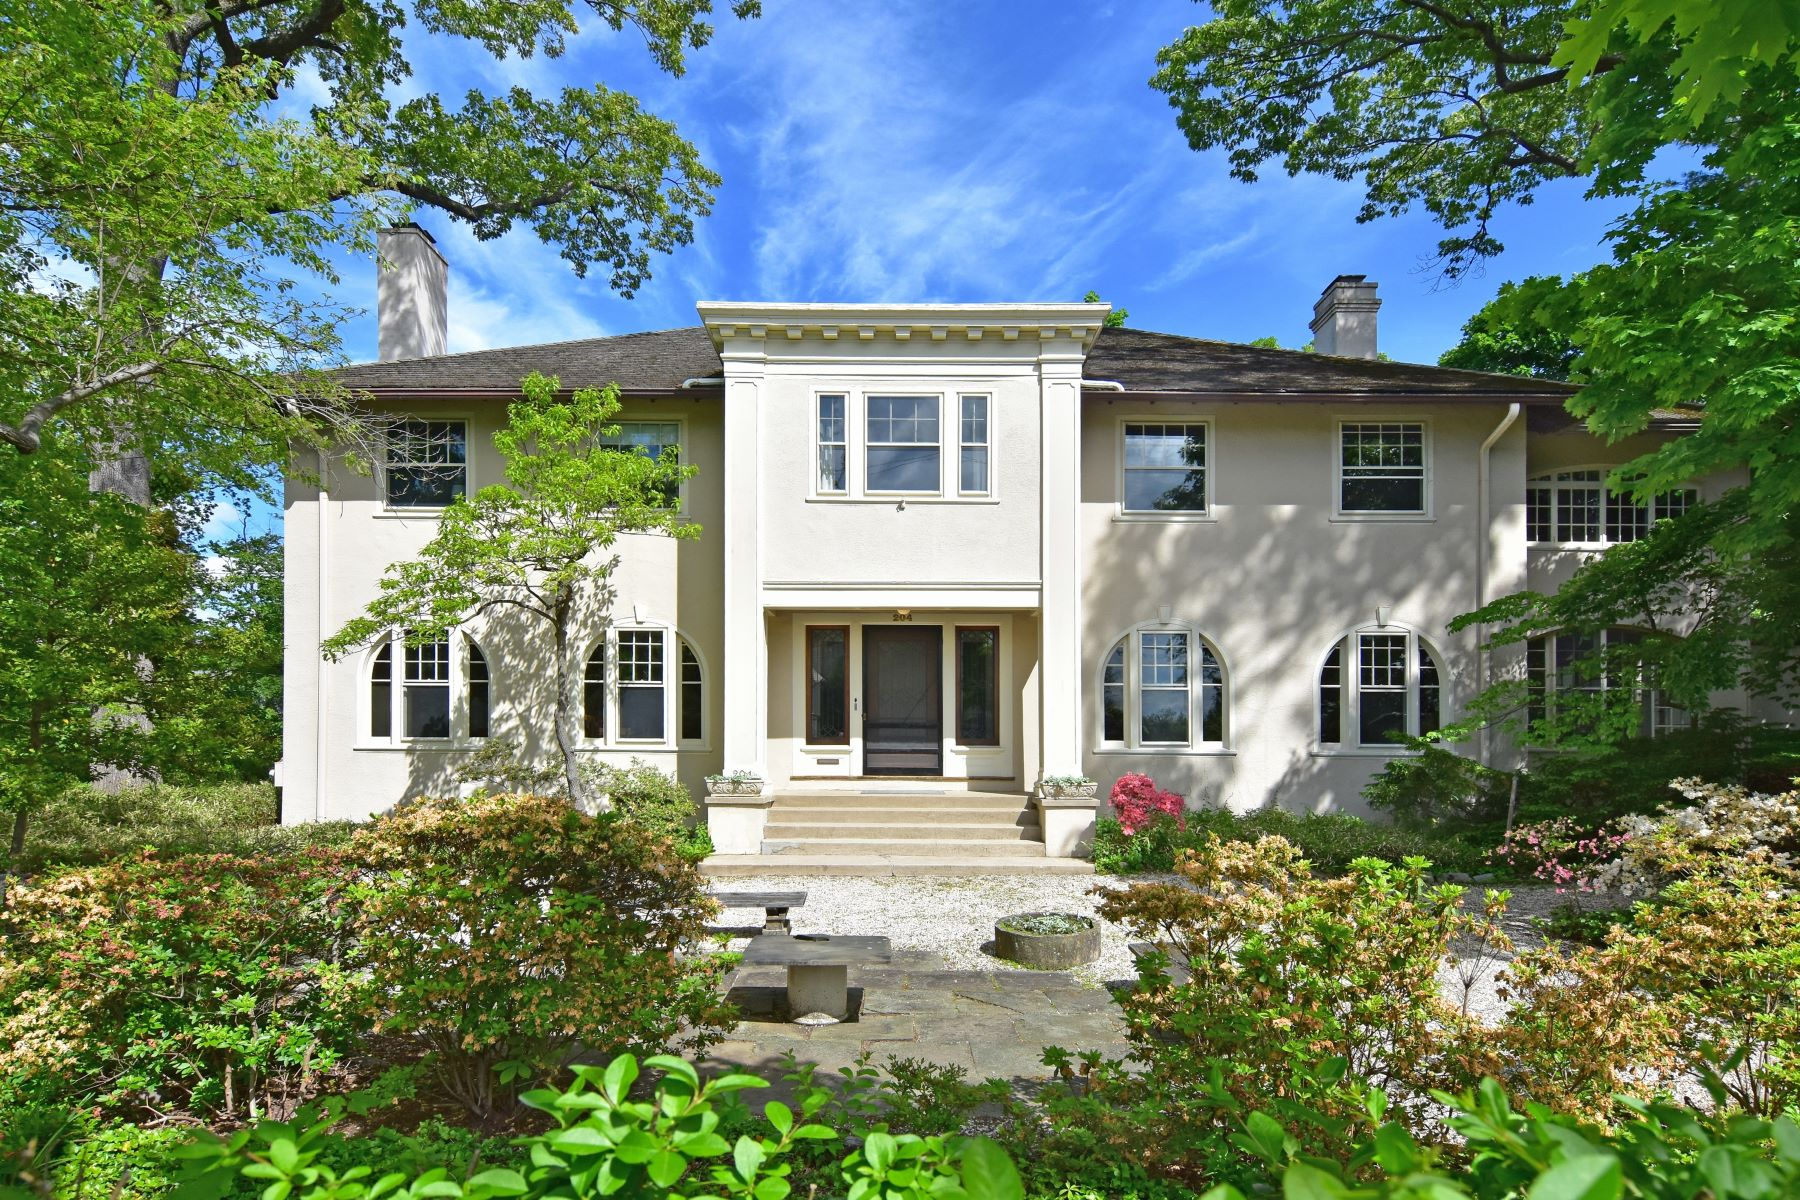 Single Family Homes for Active at Welcome To 204 Corlies 204 Corlies Avenue Pelham, New York 10803 United States